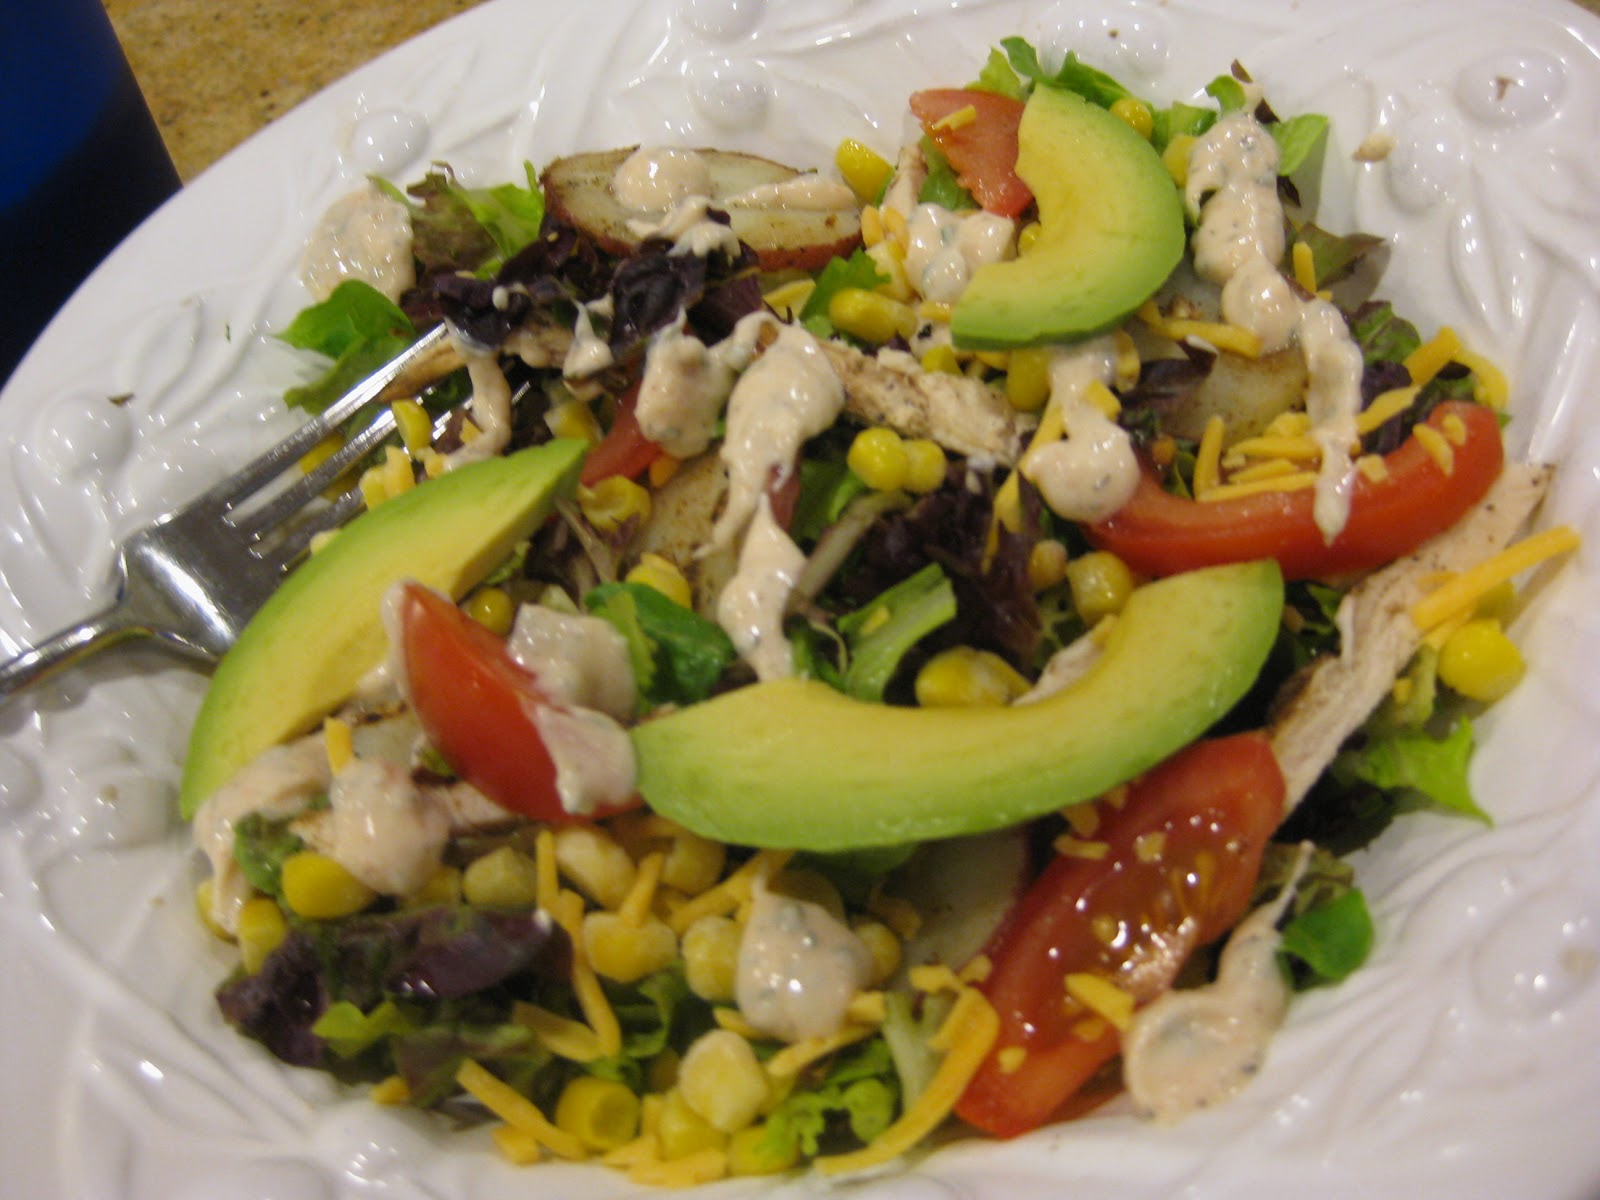 ... : Grilled Chicken, Corn & Avocado Salad with Chipotle Ranch Dressing